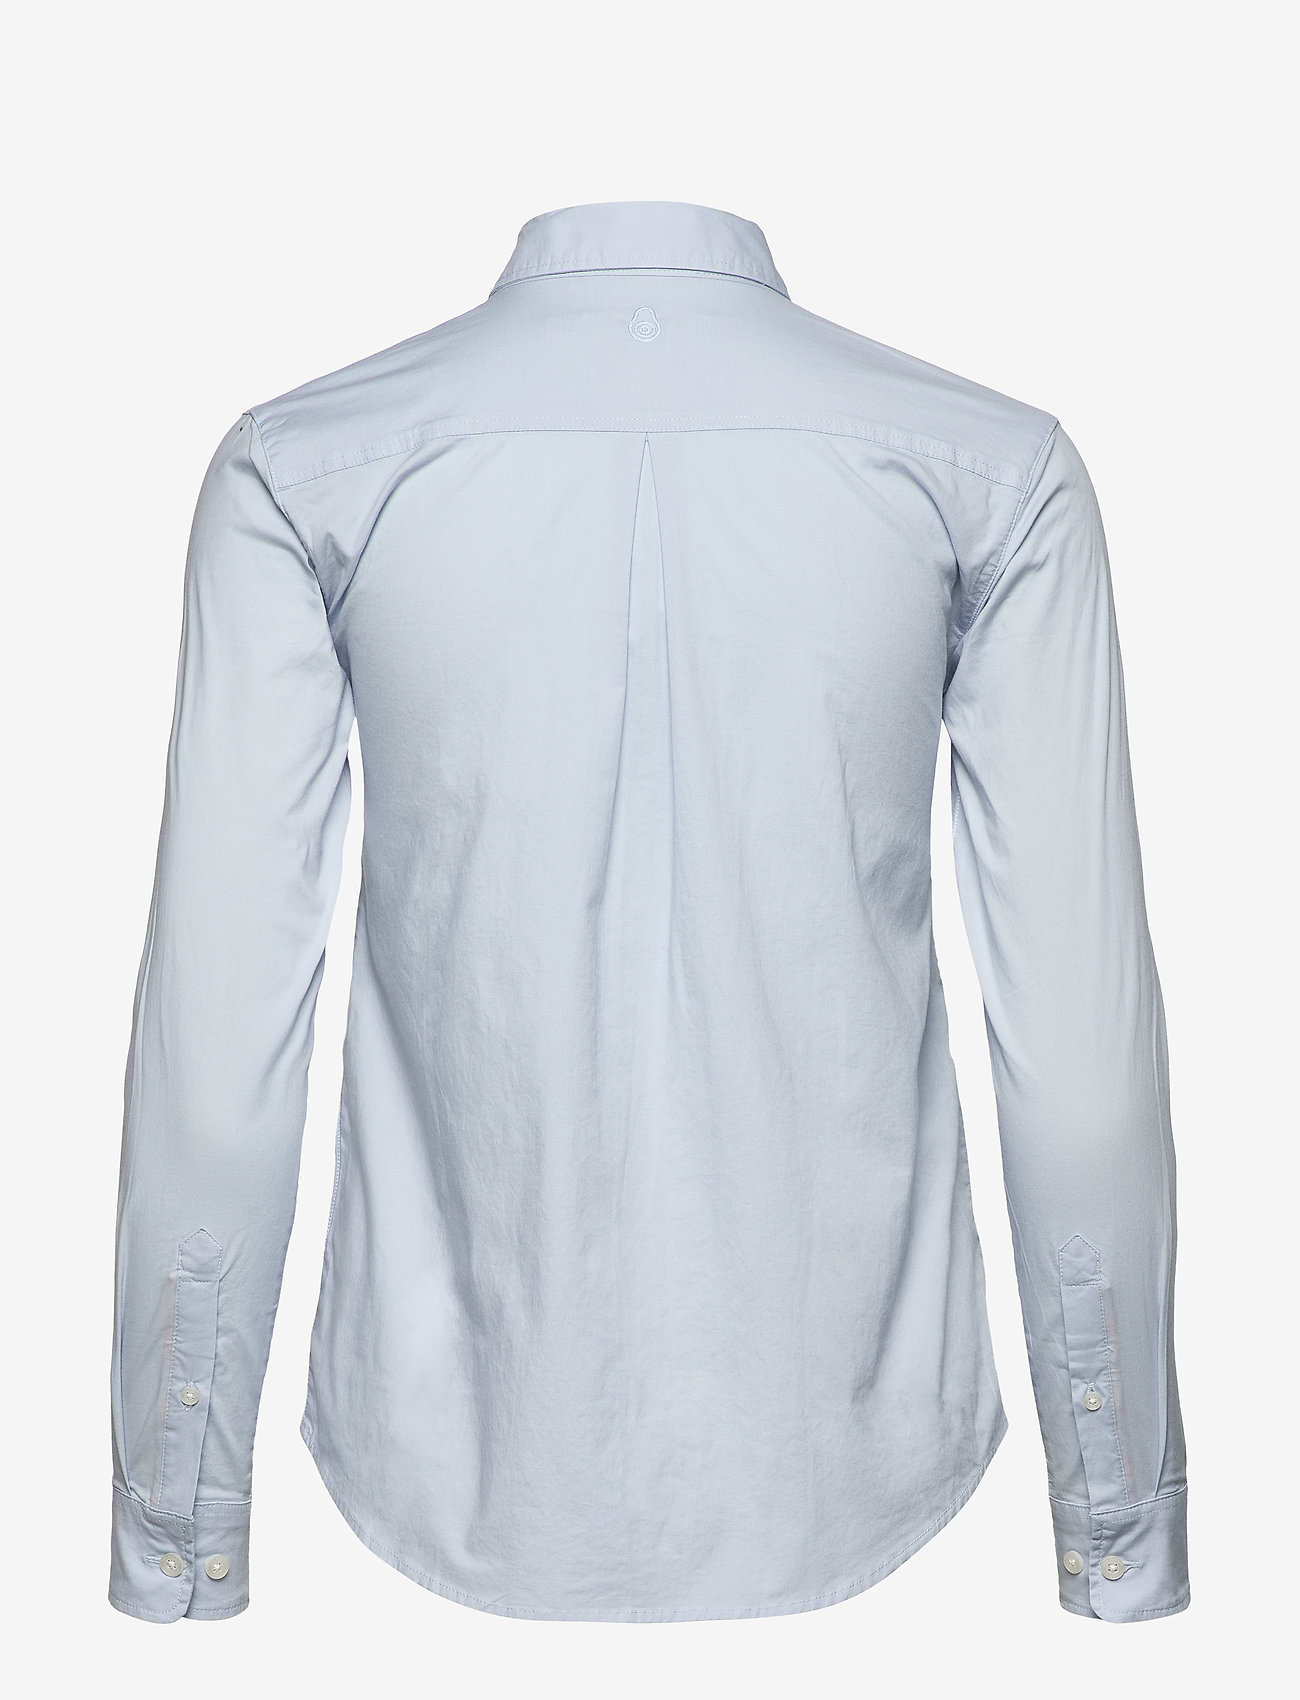 Sail Racing - W GALE SHIRT - long-sleeved shirts - light blue - 1